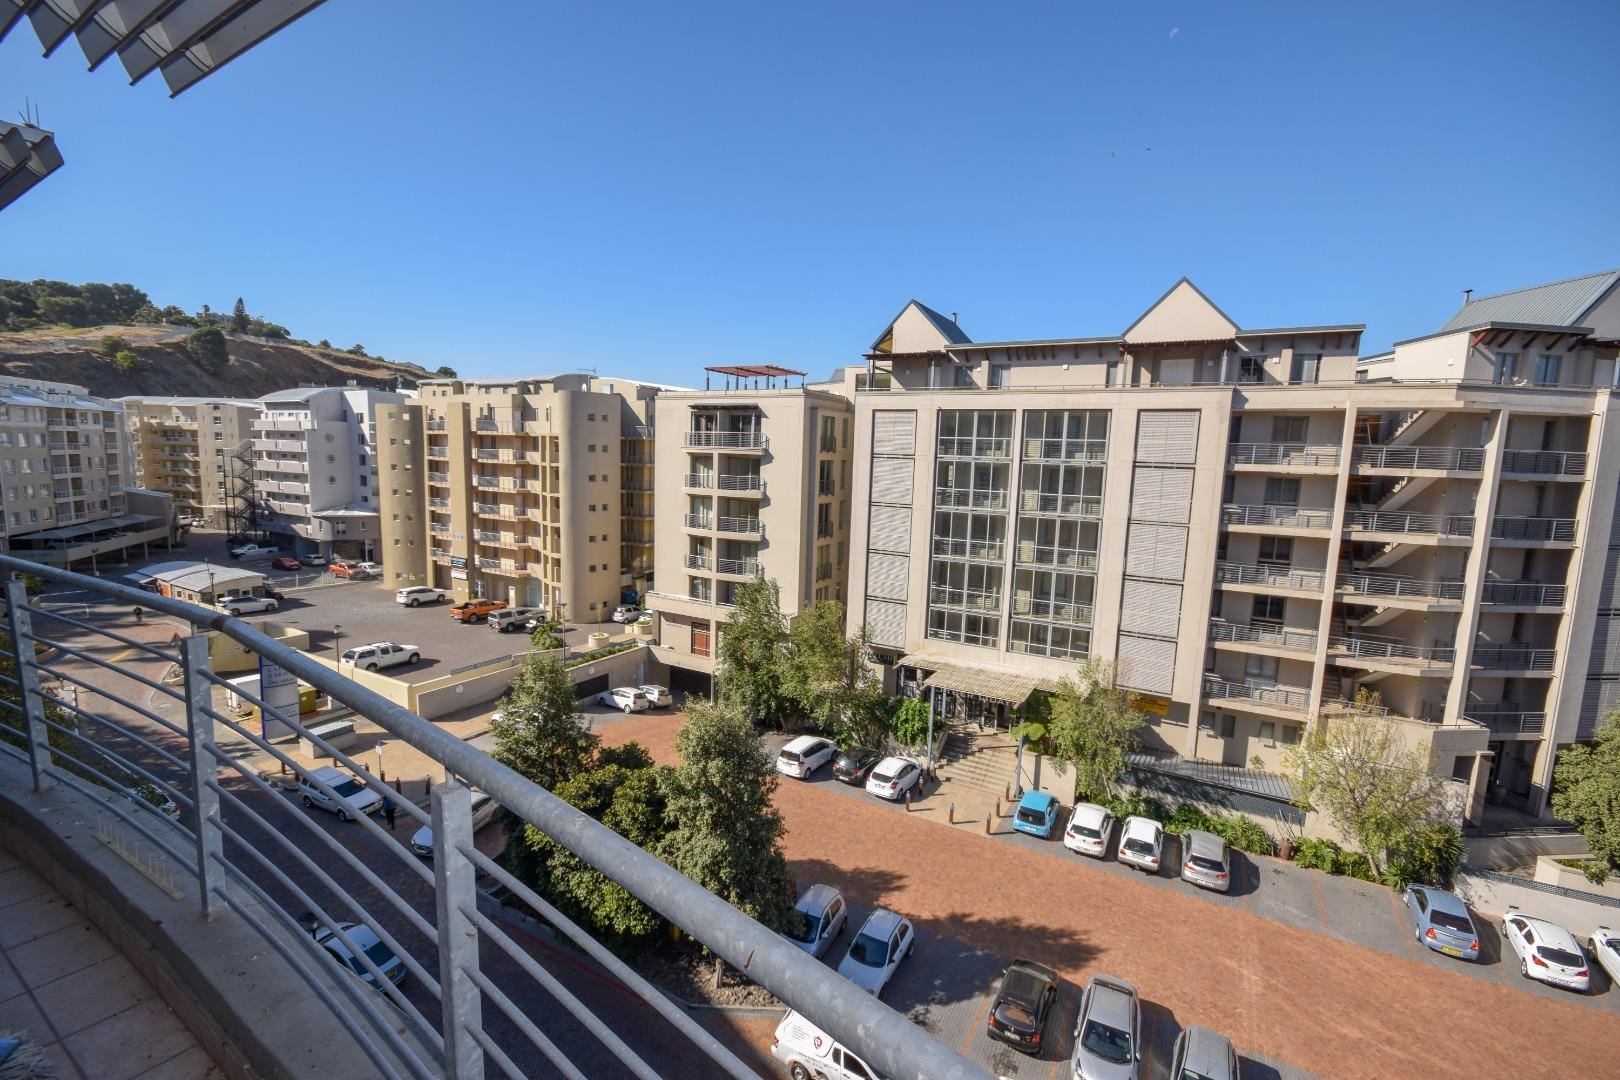 2 Bedroom Apartment for Sale in Tyger Waterfront, Bellville - Western Cape